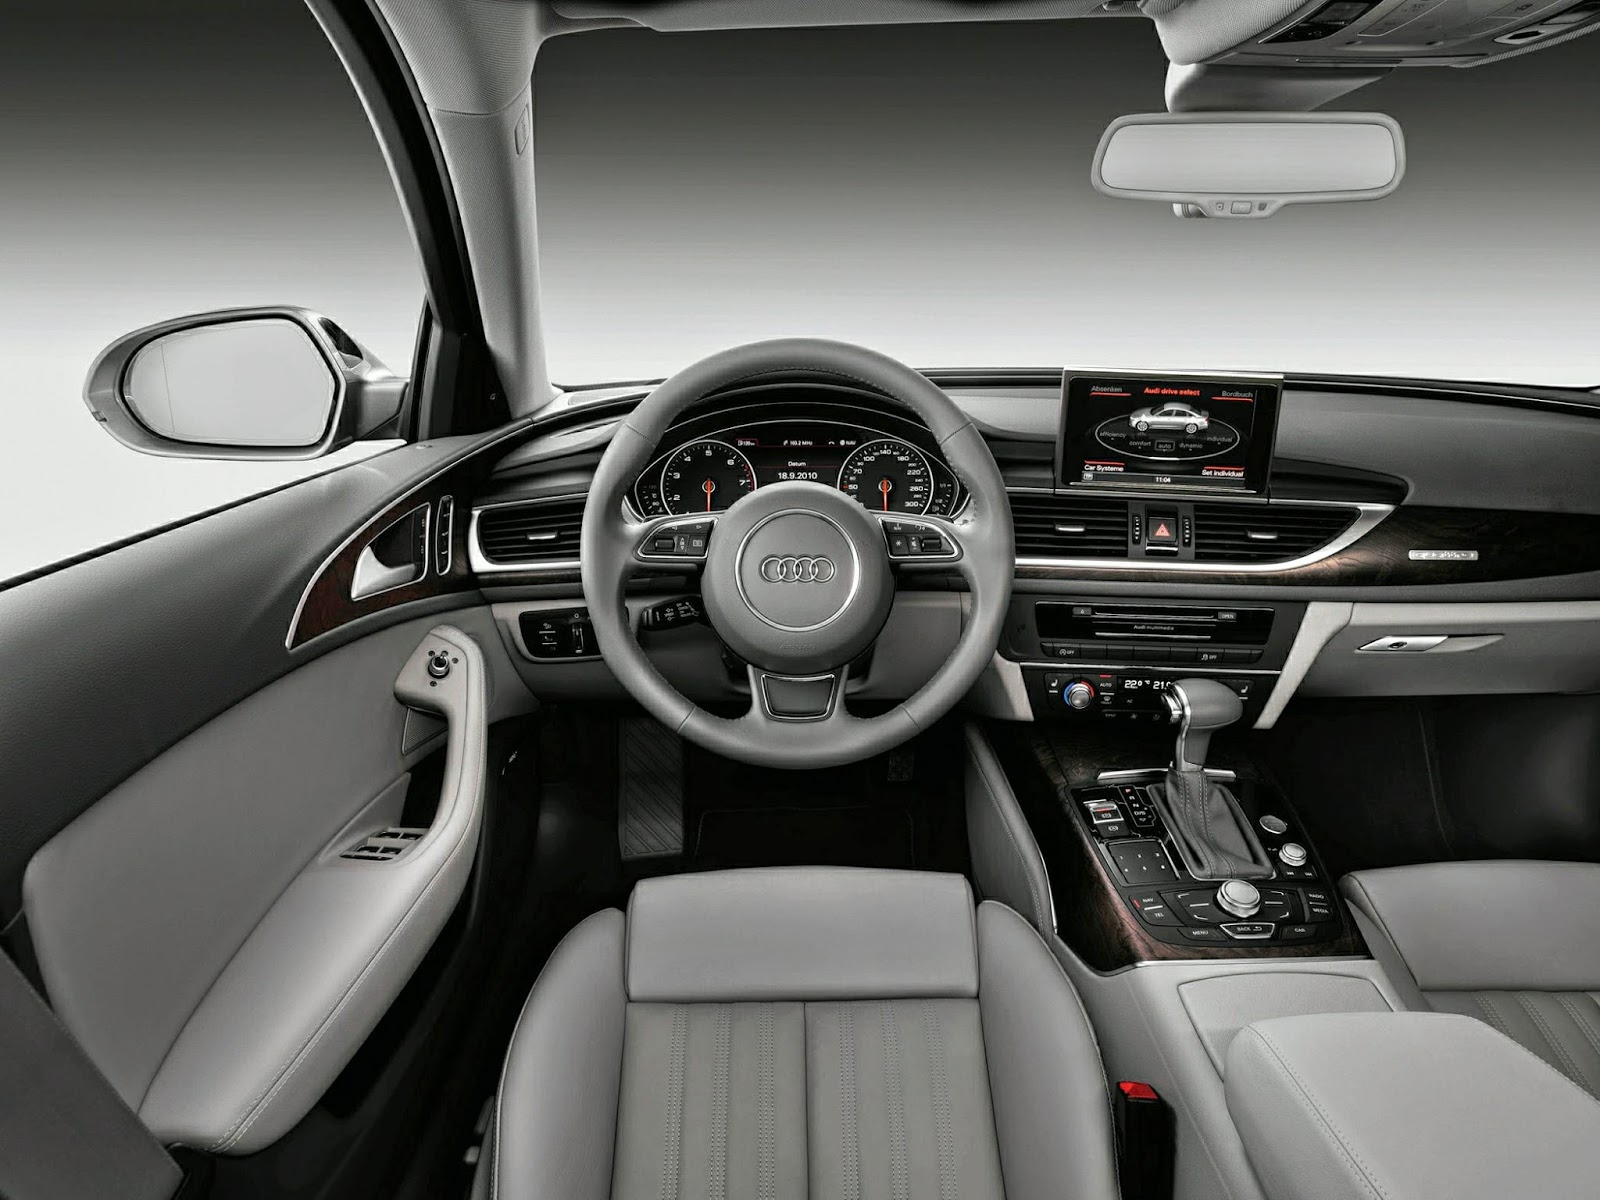 Interior view of 2014 Audi A6